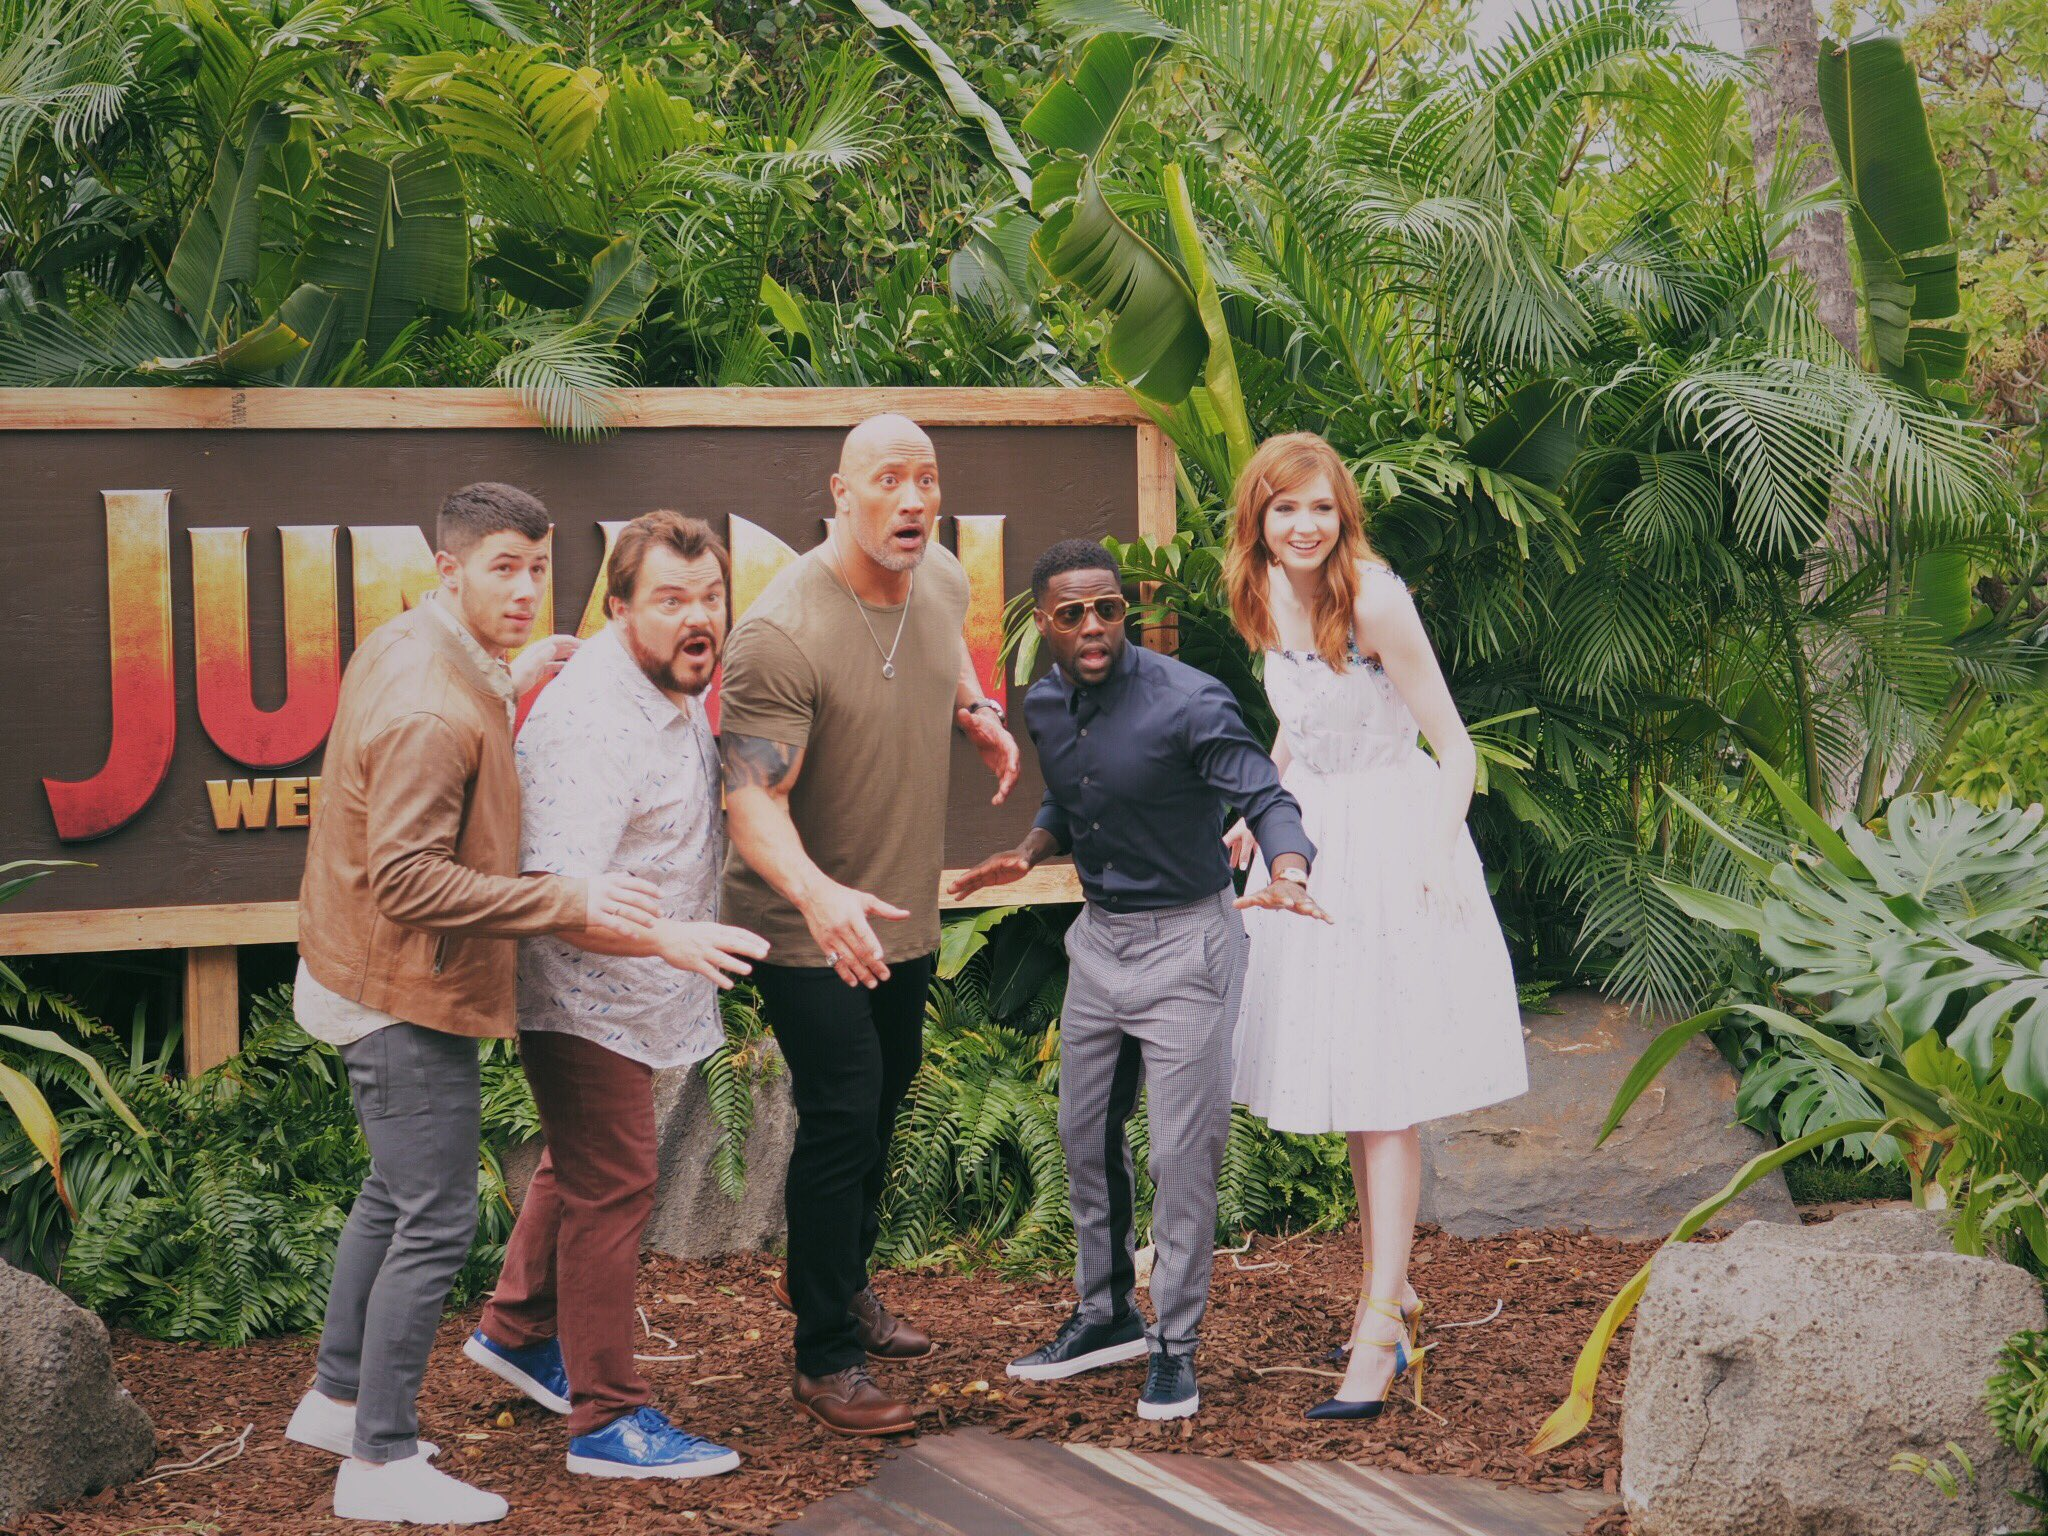 Welcome to the jungle! #JUMANJI press junket in Hawaii STARTS NOW! ���� https://t.co/31GxE5qGtI